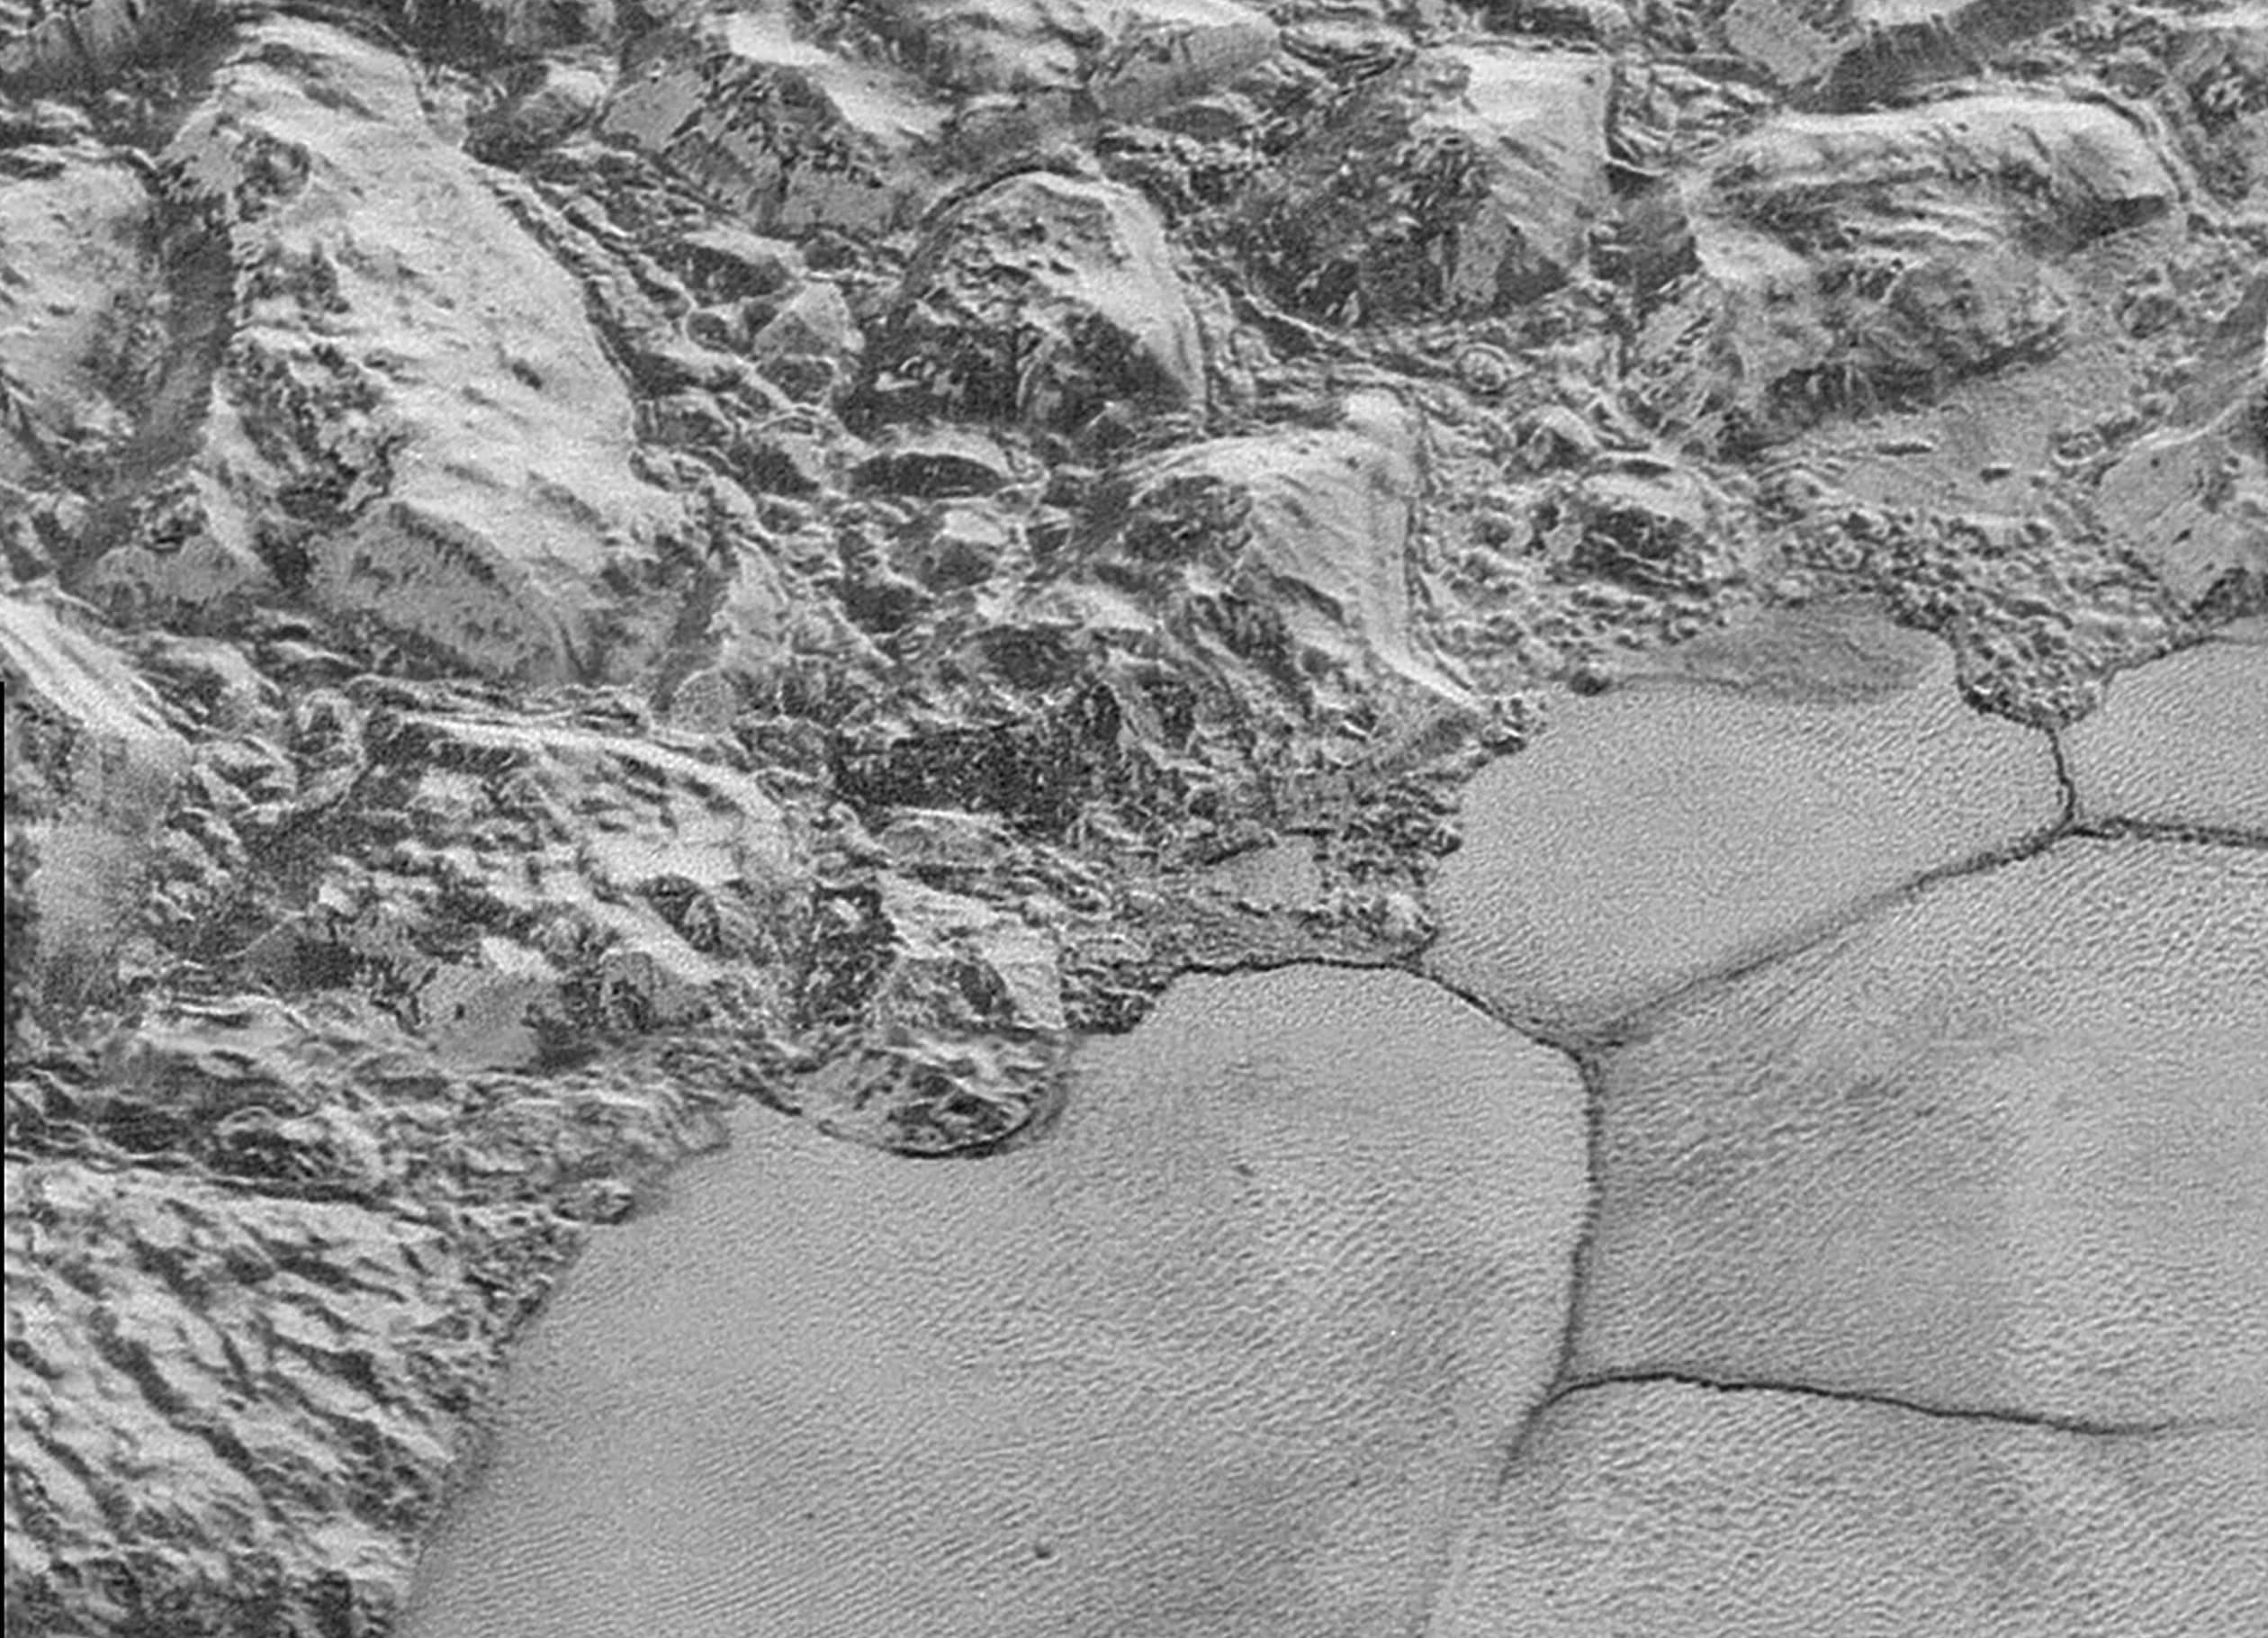 One of the surprises of the New Horizons mission was finding water ice mountains on Pluto, that quite possibly are floating on a subsurface ocean of liquid water. Image credit: NASA/JHUAPL/SWRI